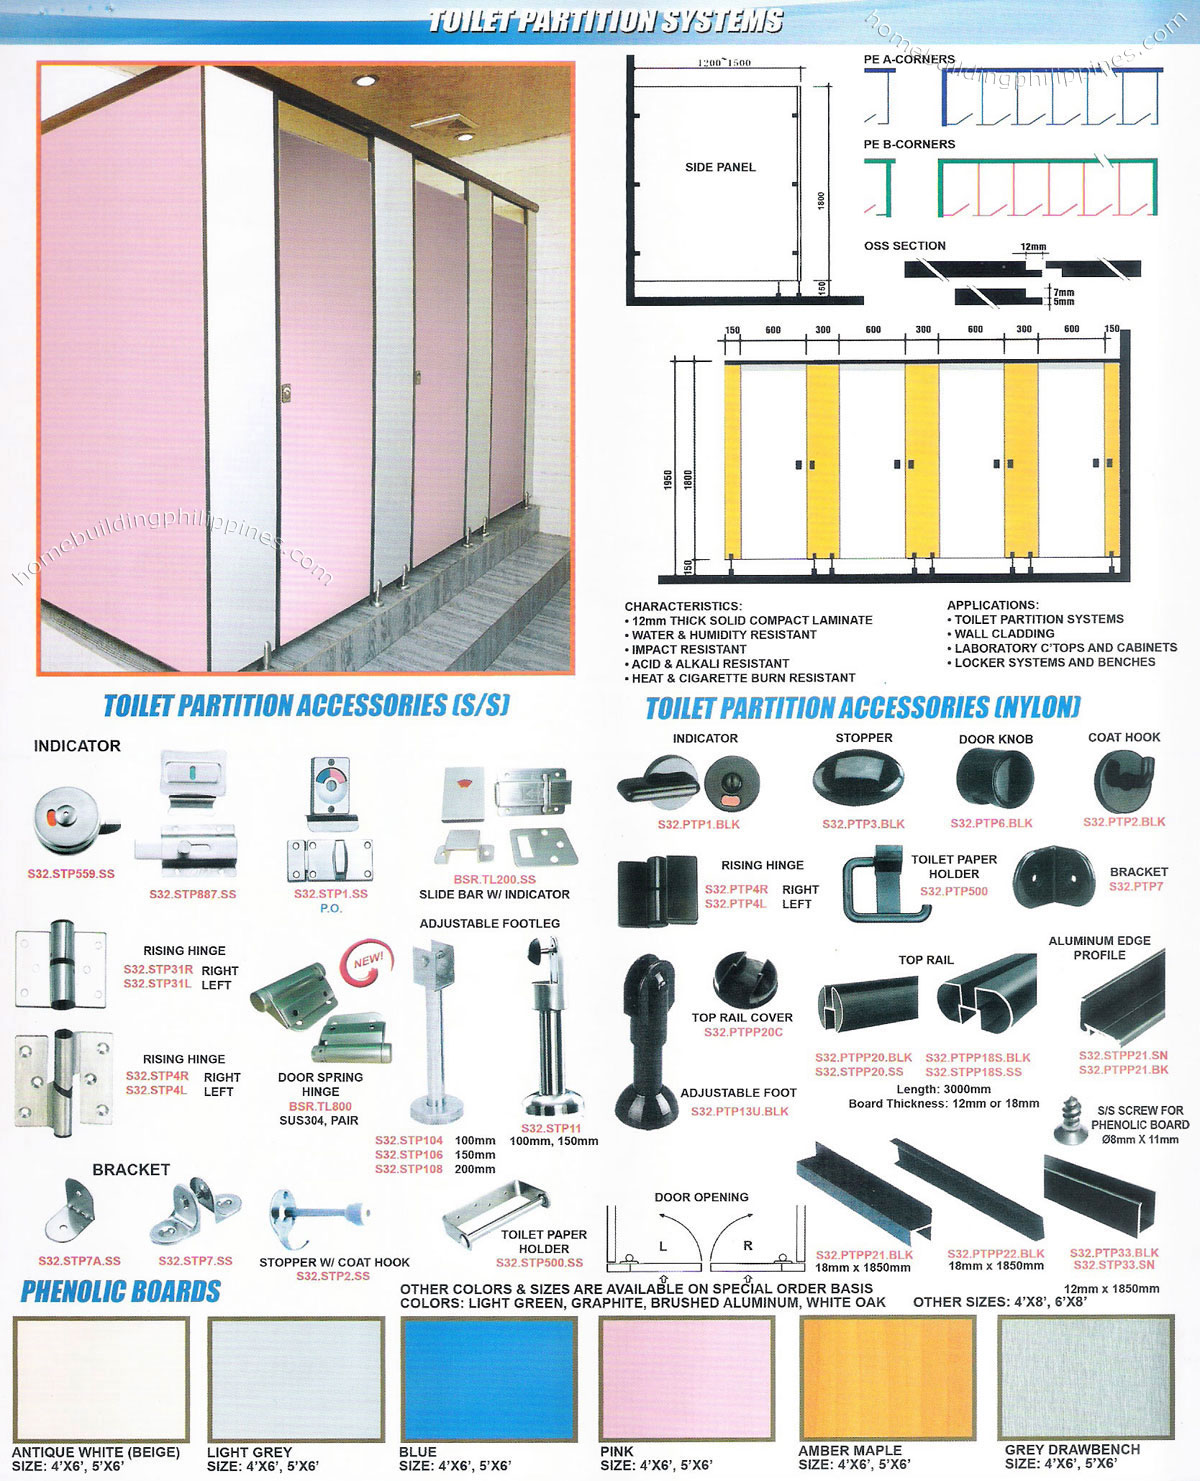 Toilet Partition Systems Accessories Philippines - Bathroom partitions prices